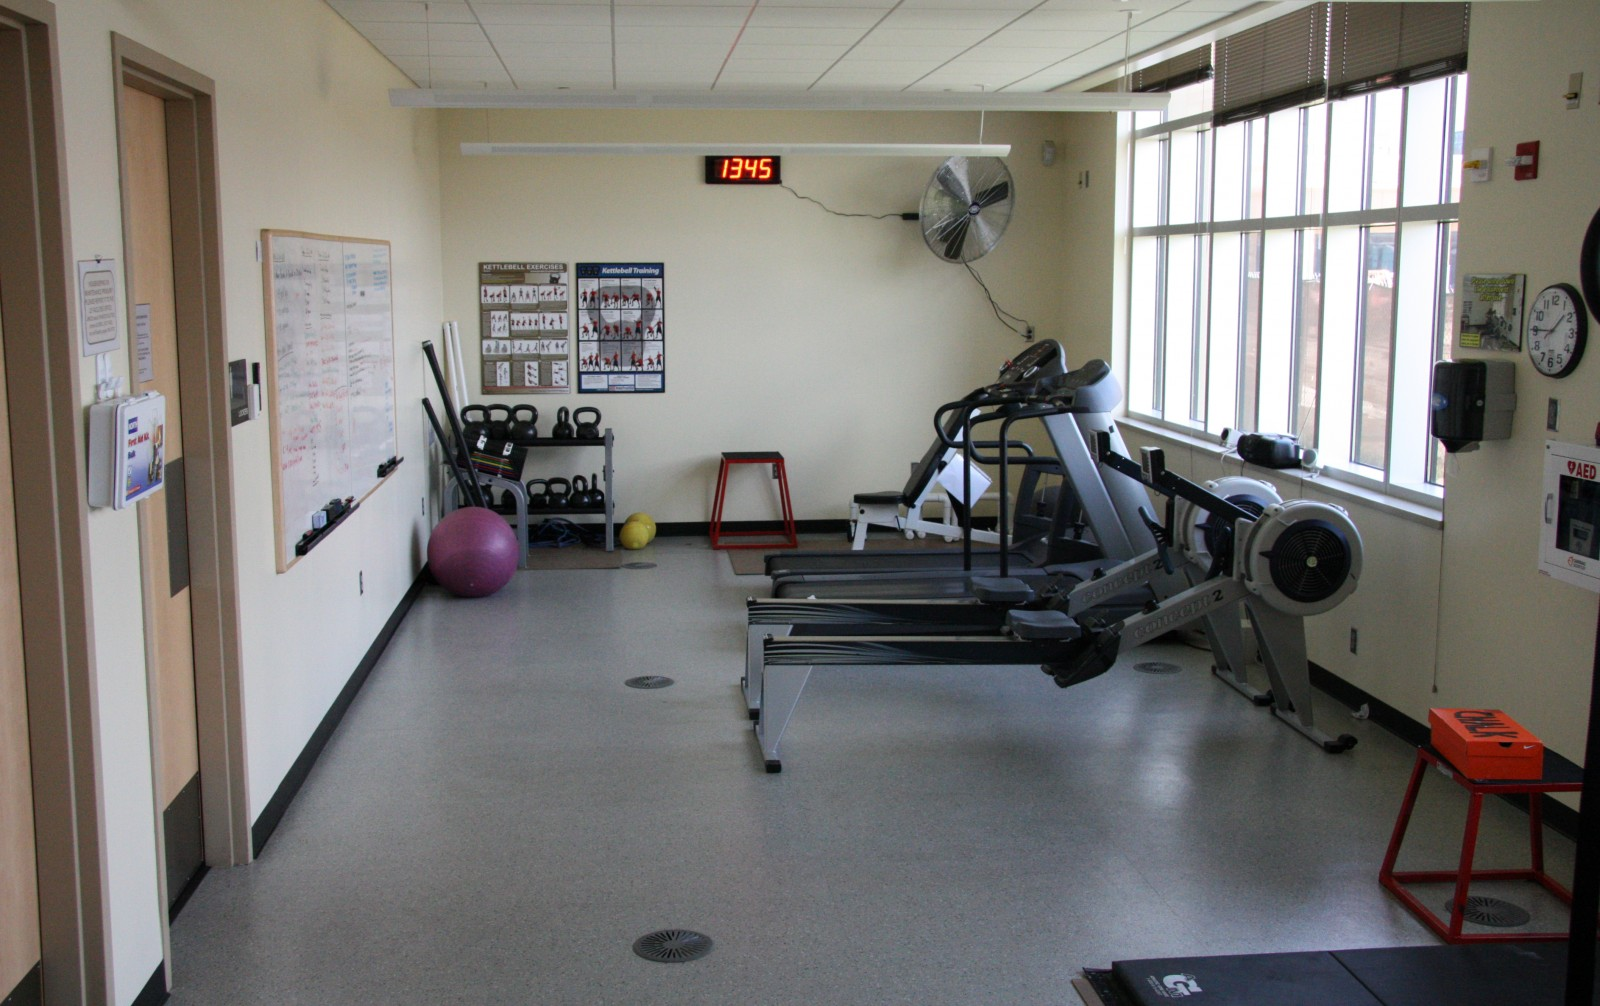 The other half of the gym